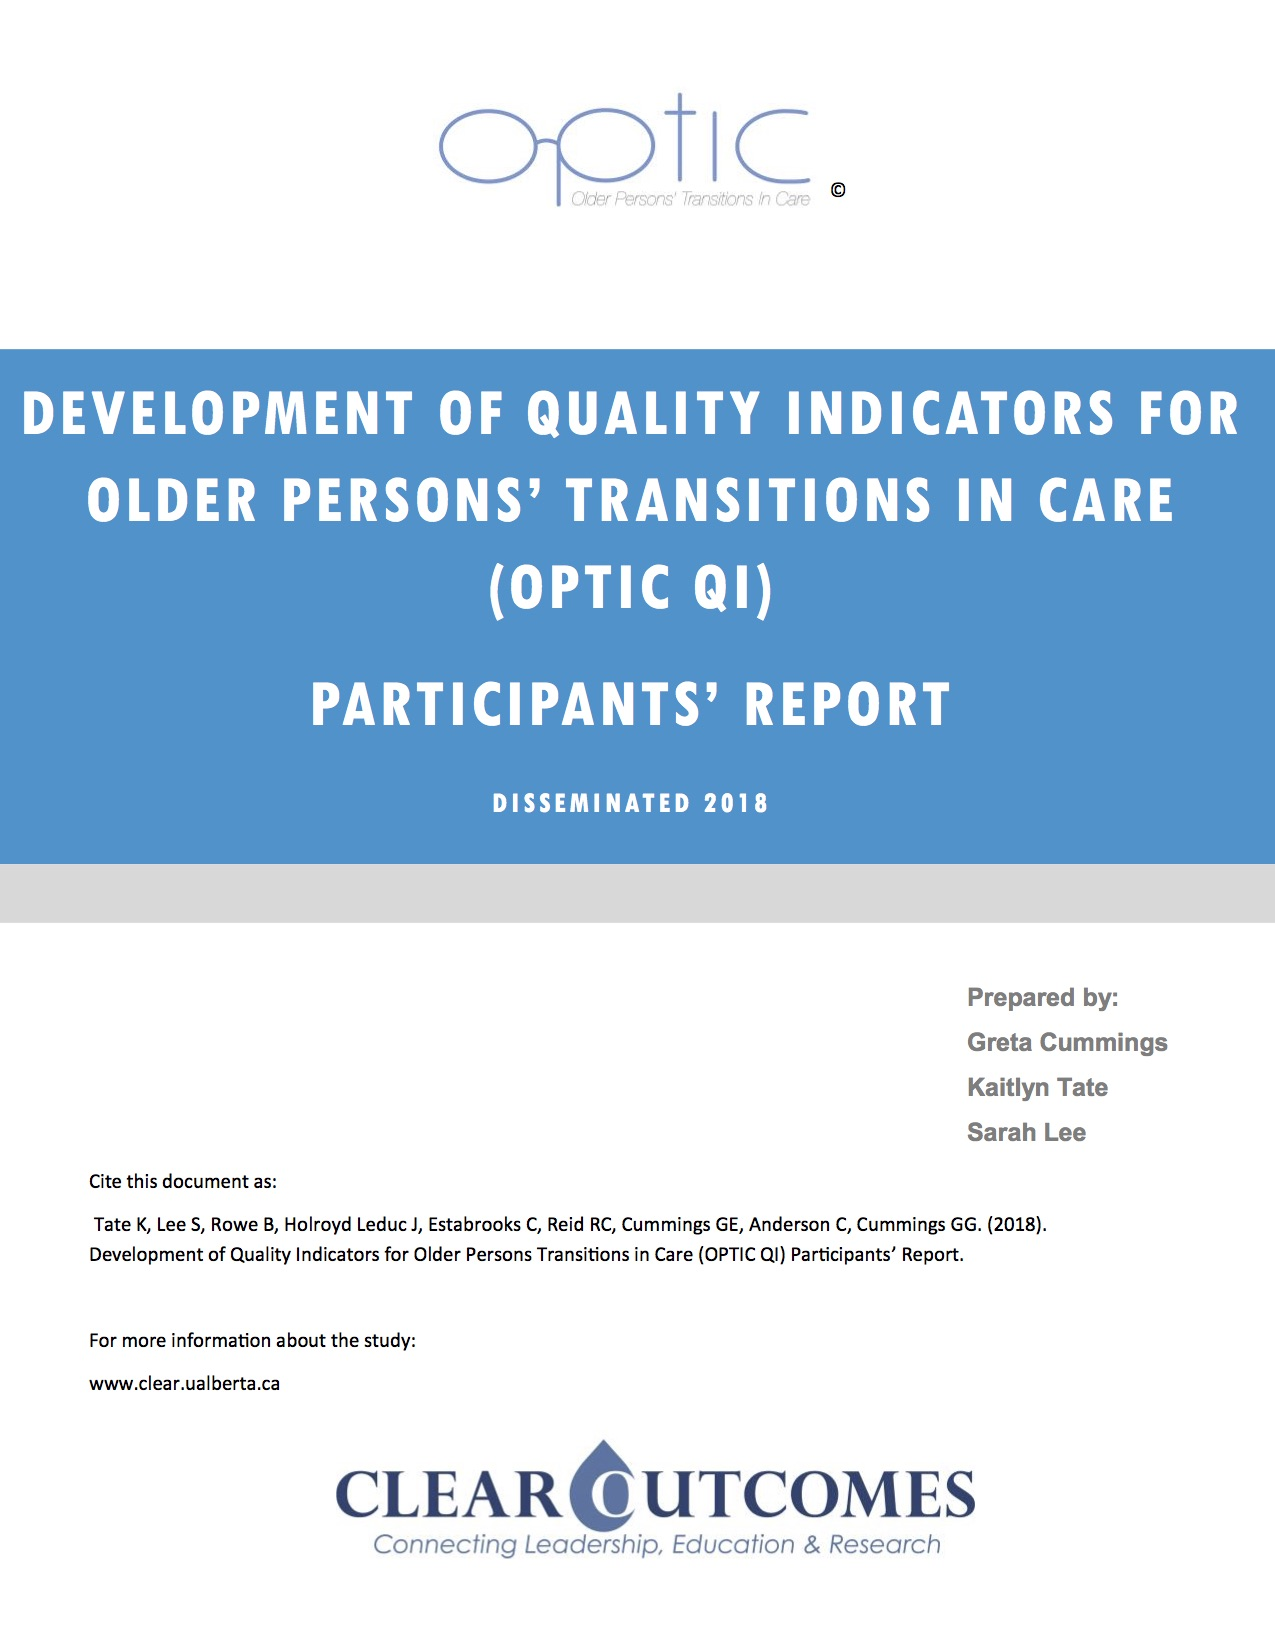 OPTIC QI final report